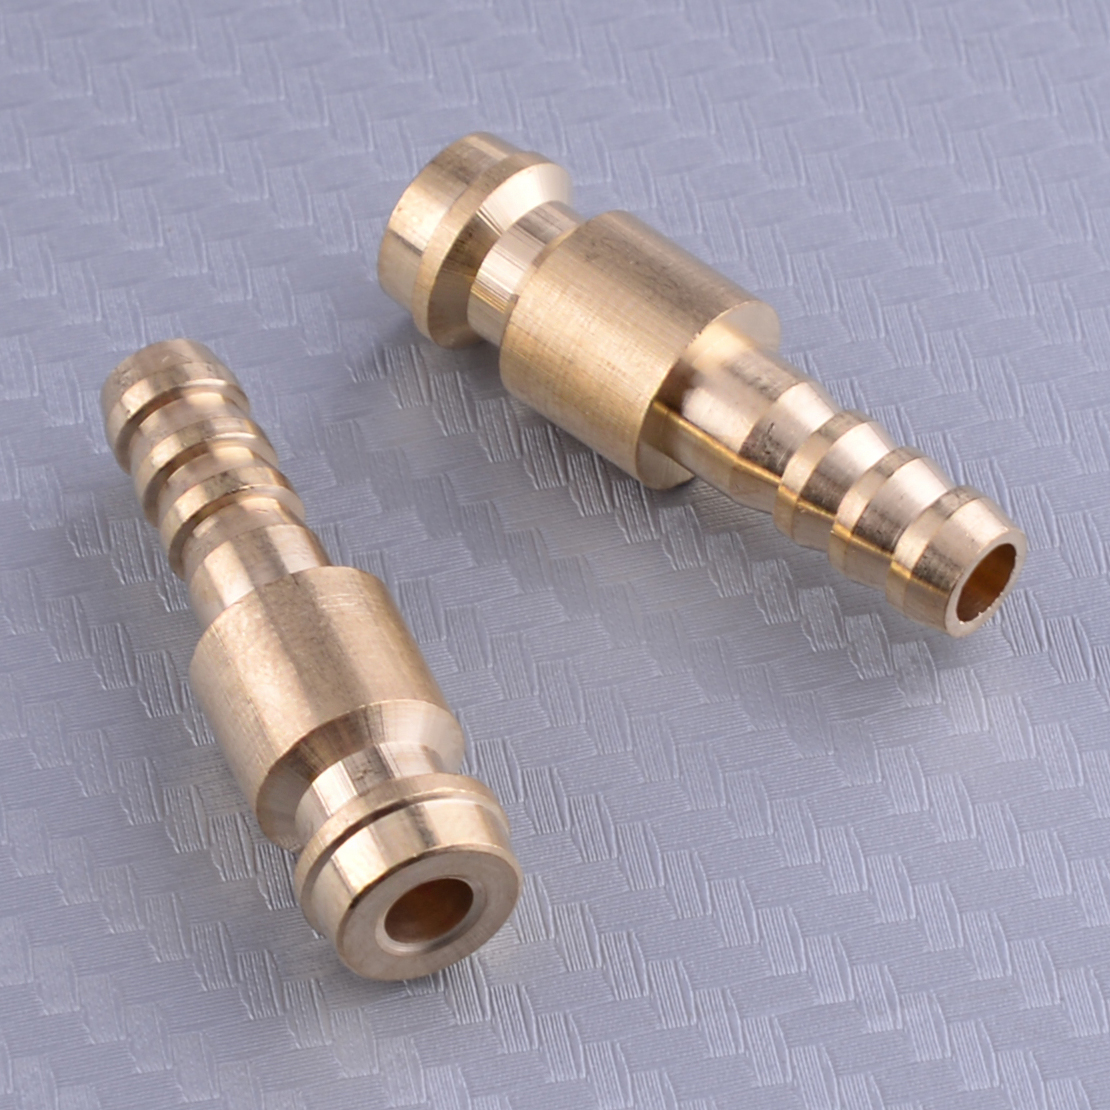 Tig Torches 2pcs Male Quick Connectors For Tig Welding Torch